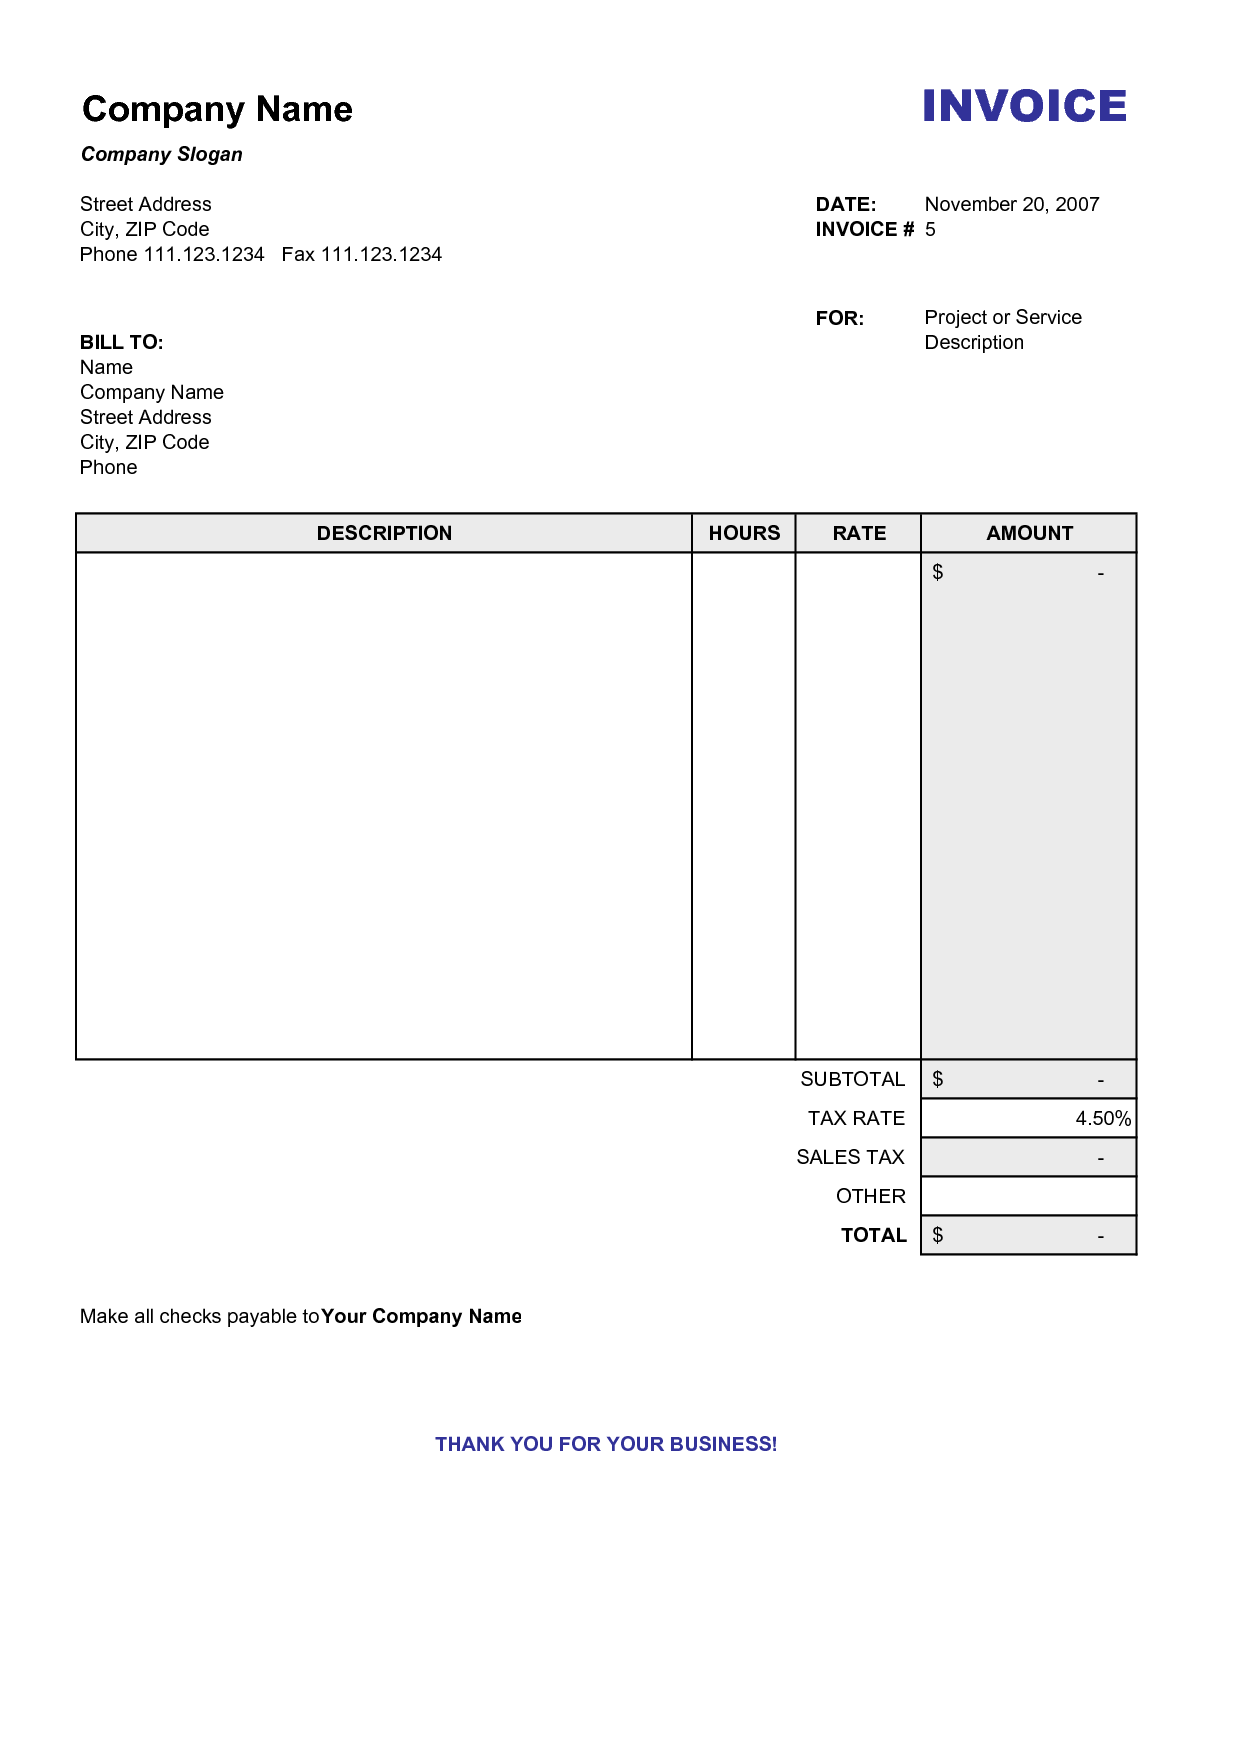 blank invoice excel download free invoice template IKoPys | free